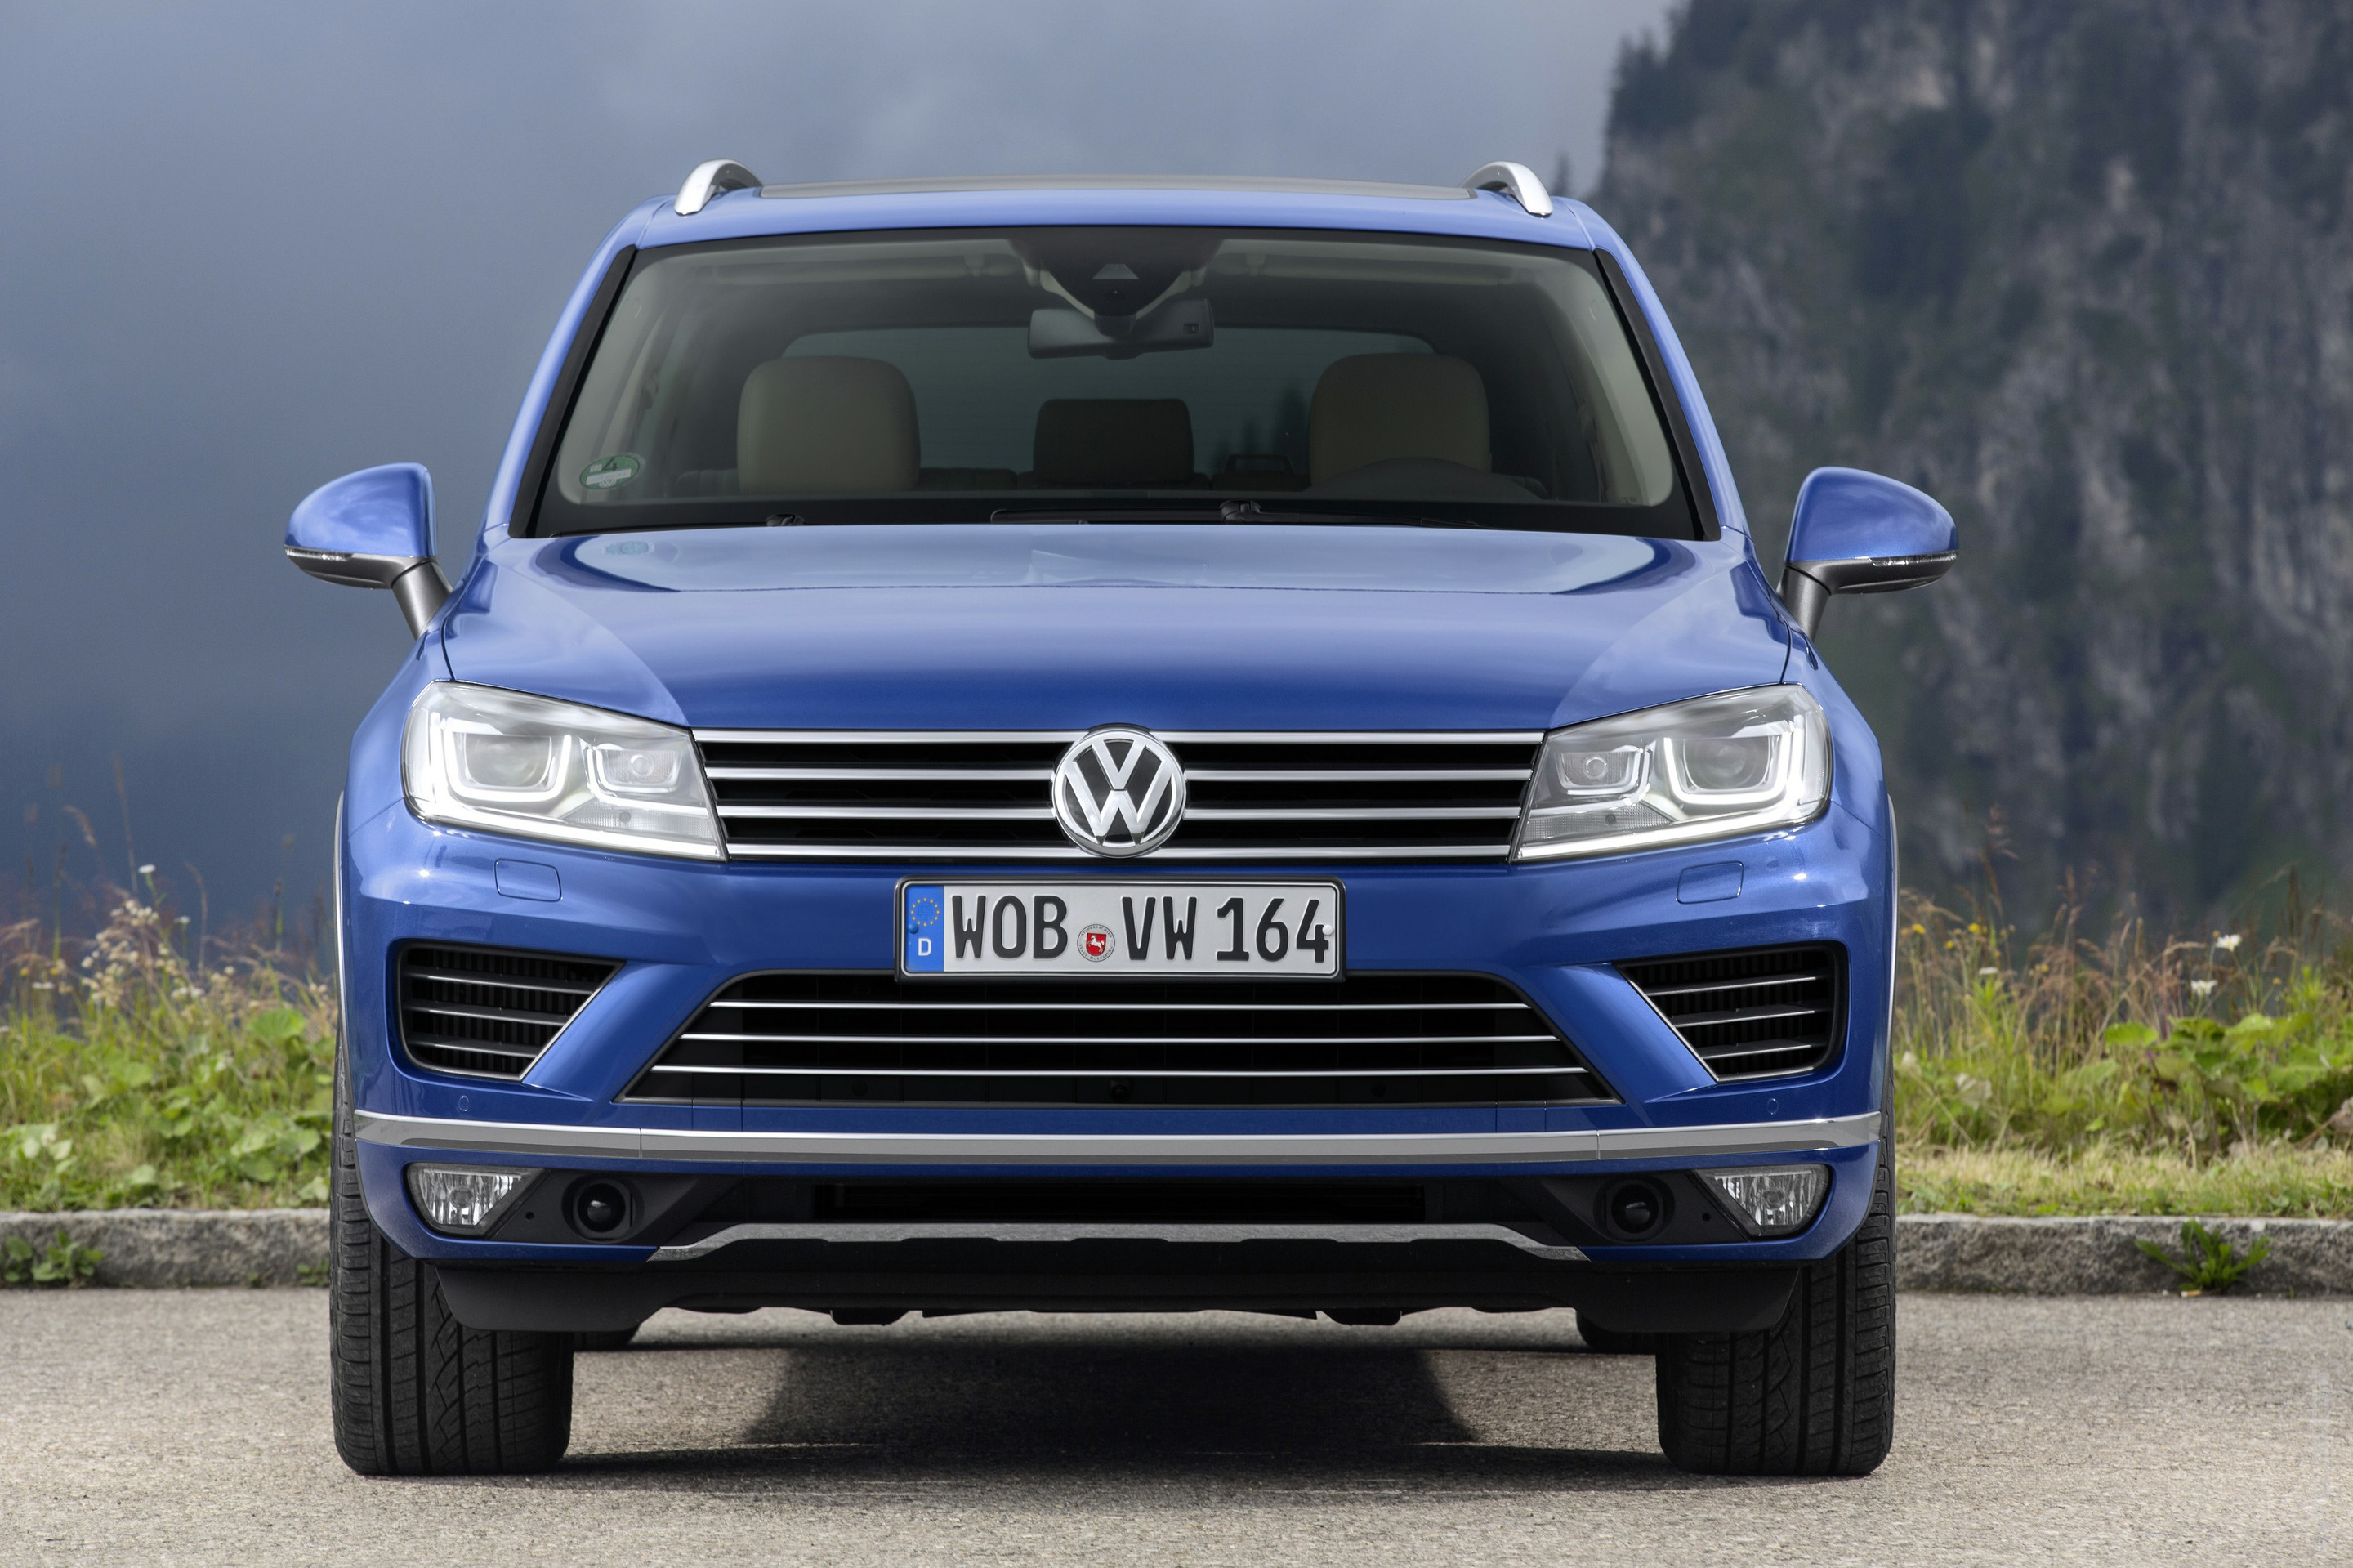 2019 Volkswagen Touareg V6 TDI photo - 3